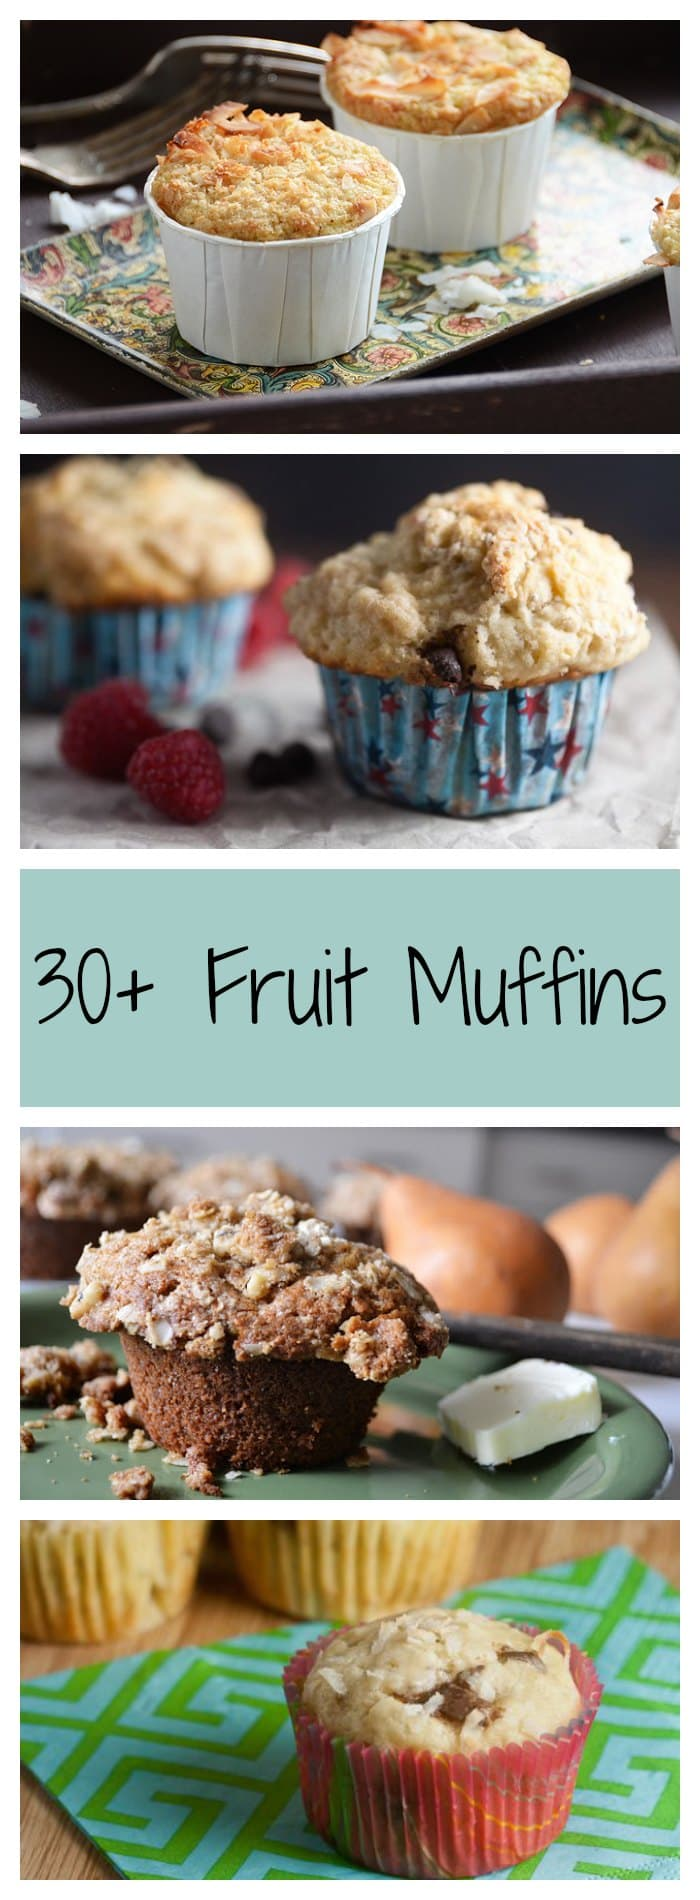 30+ Muffins with Fresh Fruit